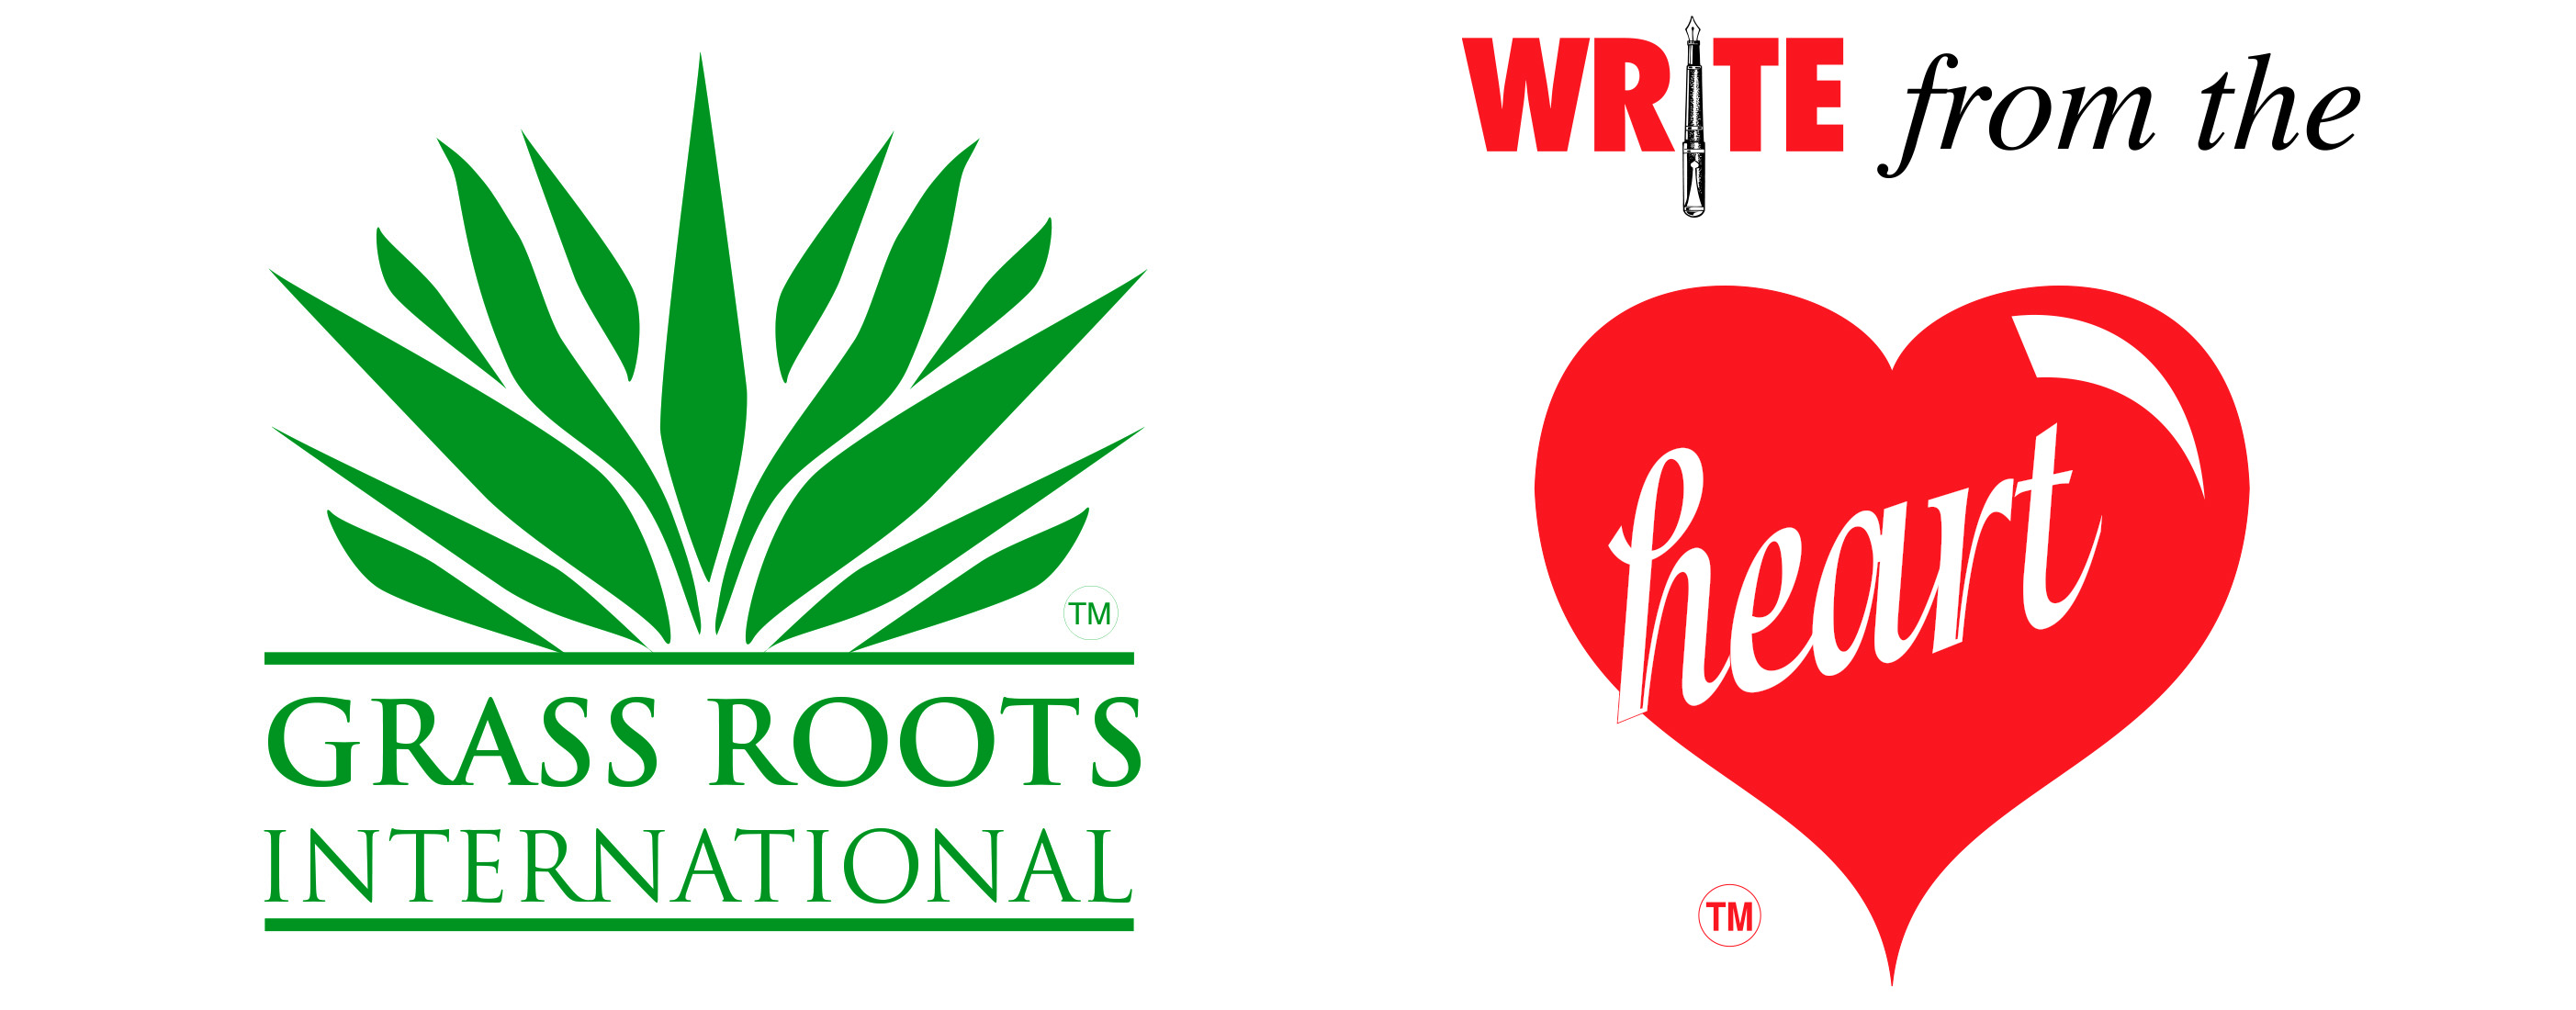 Above: The Grass Roots and Write from the Heart brand names are now owned by the Simon Elvin group.